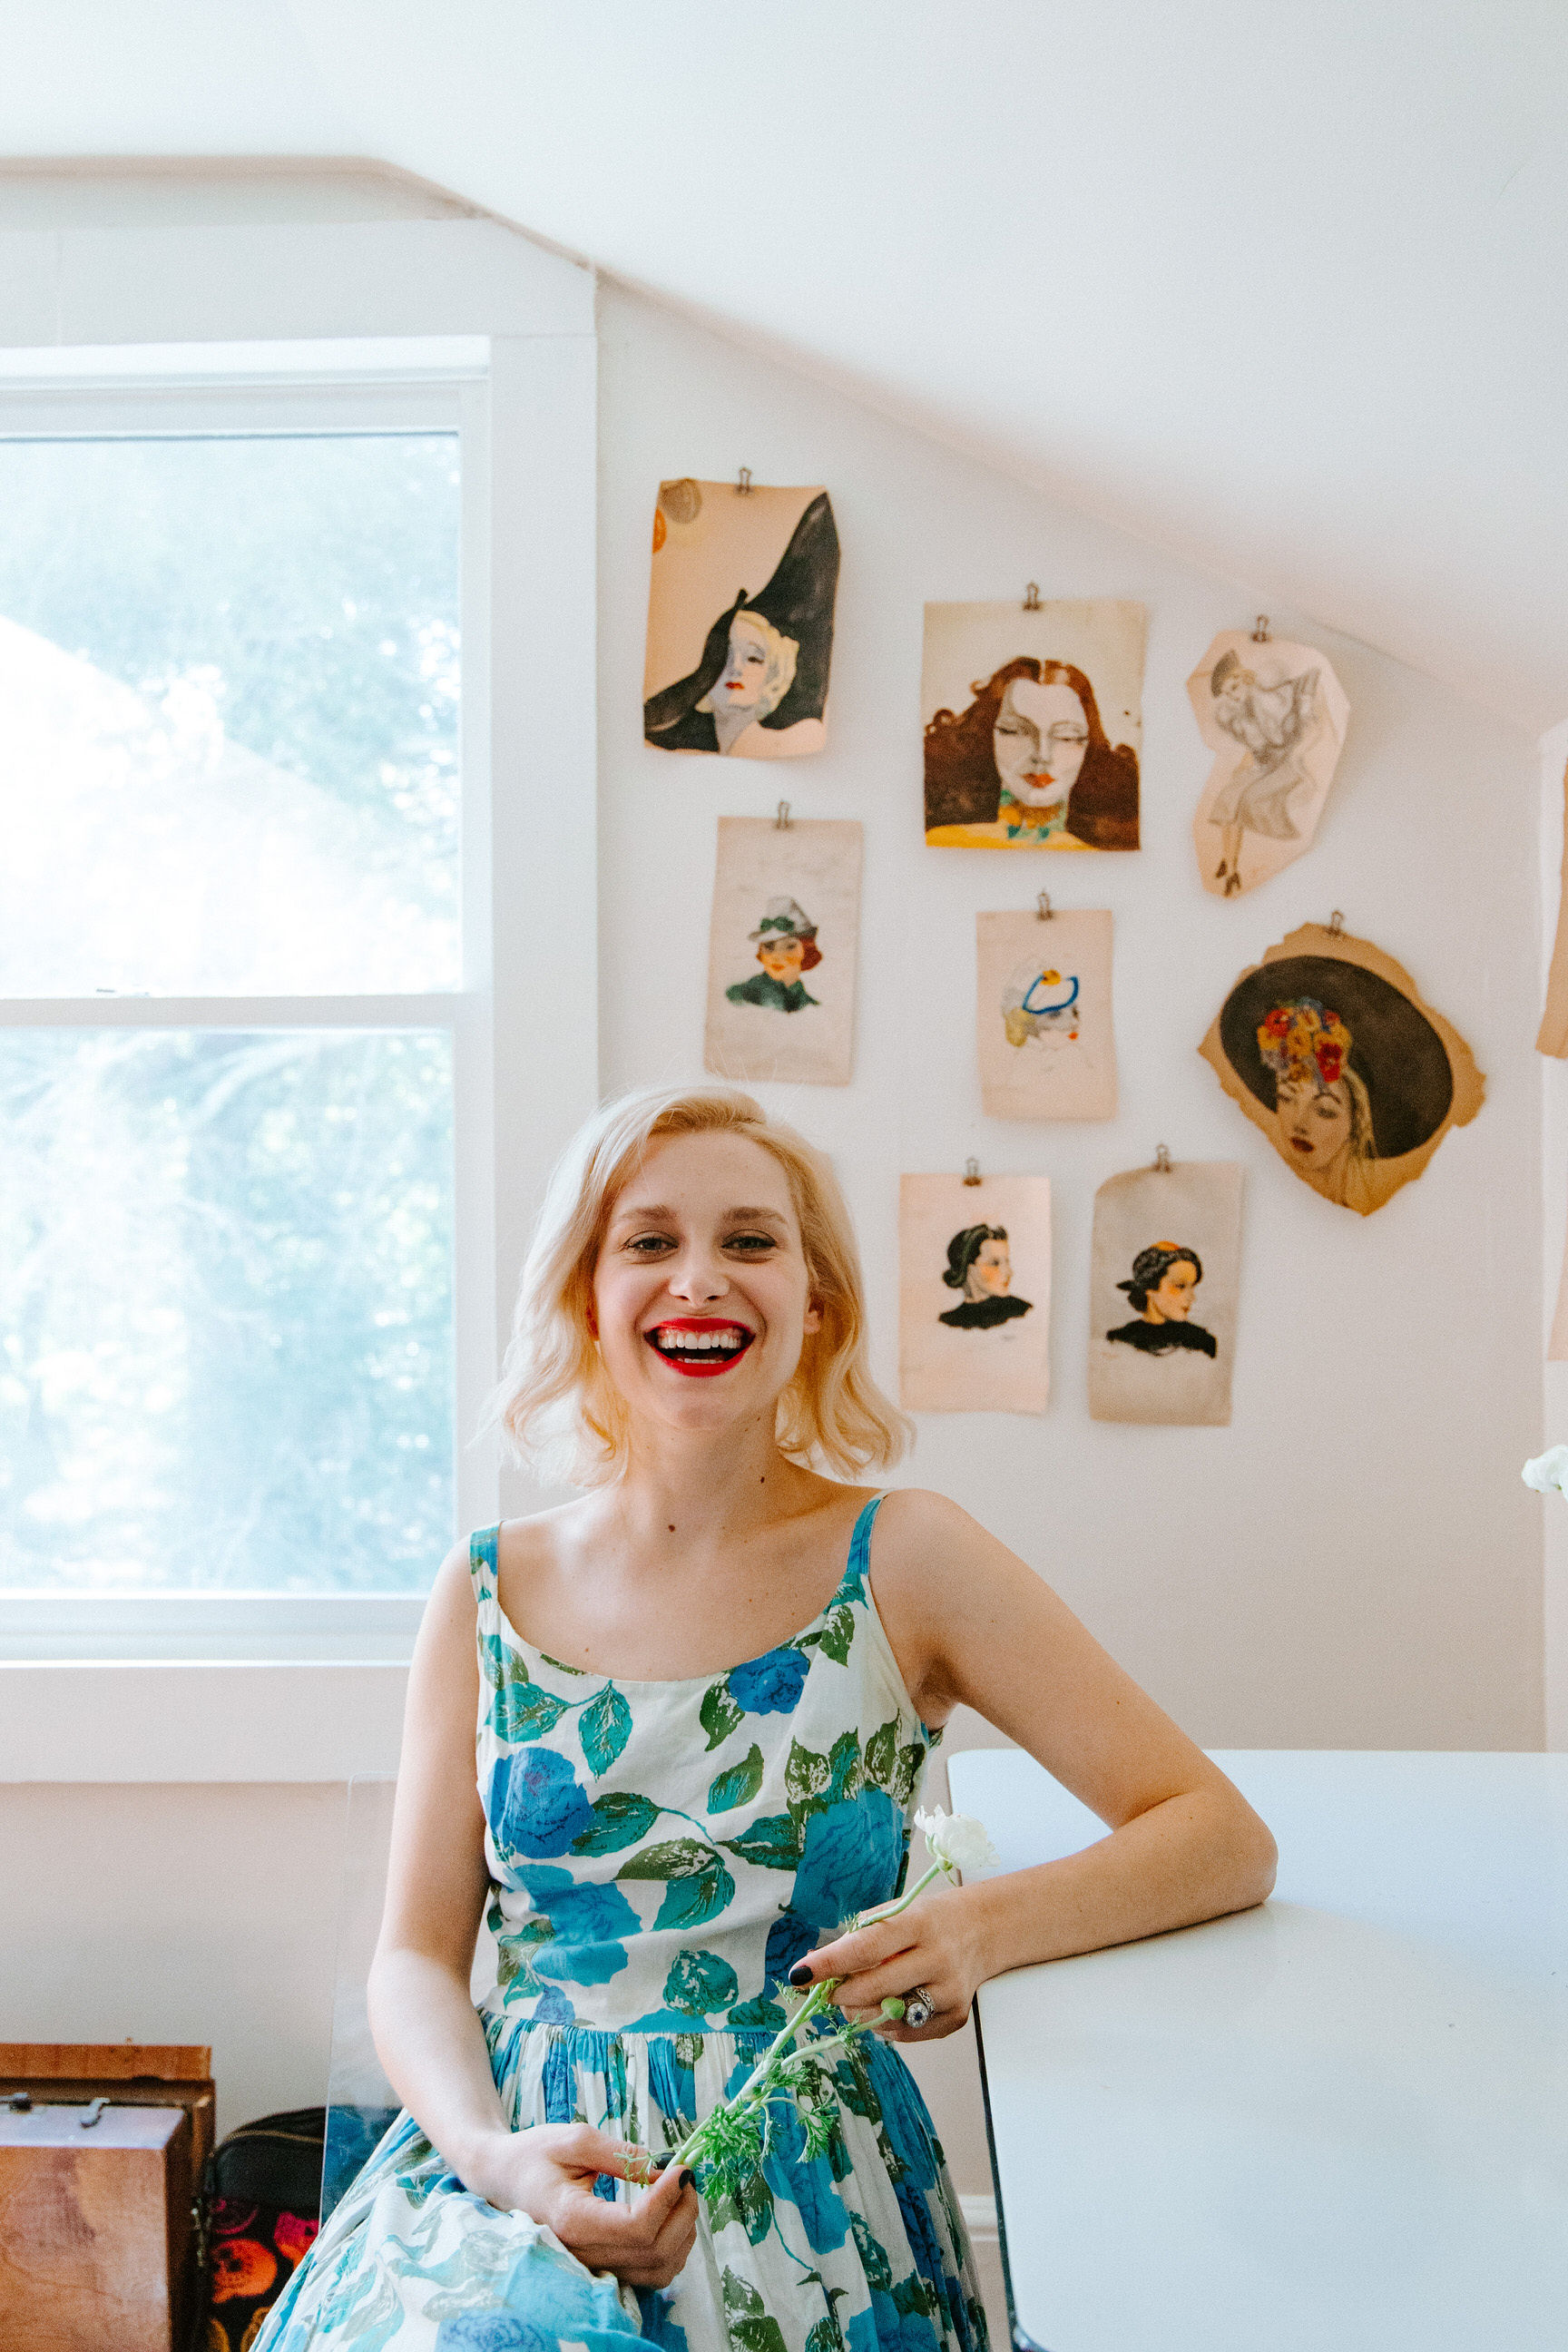 Hello! I'm Courtney Hinton, owner of Hearth + Home Interiors. I'm a Yankee-born, West coast-transplant who now lives in a little 1920's farmhouse in Asheville with my insanely wonderful man and three spoiled fur babies. Things that make me happy are: old houses, antiques, black paint, animals, vintage dresses, rock n' roll, cooking, drinking wine and watching movies (especially period pieces).